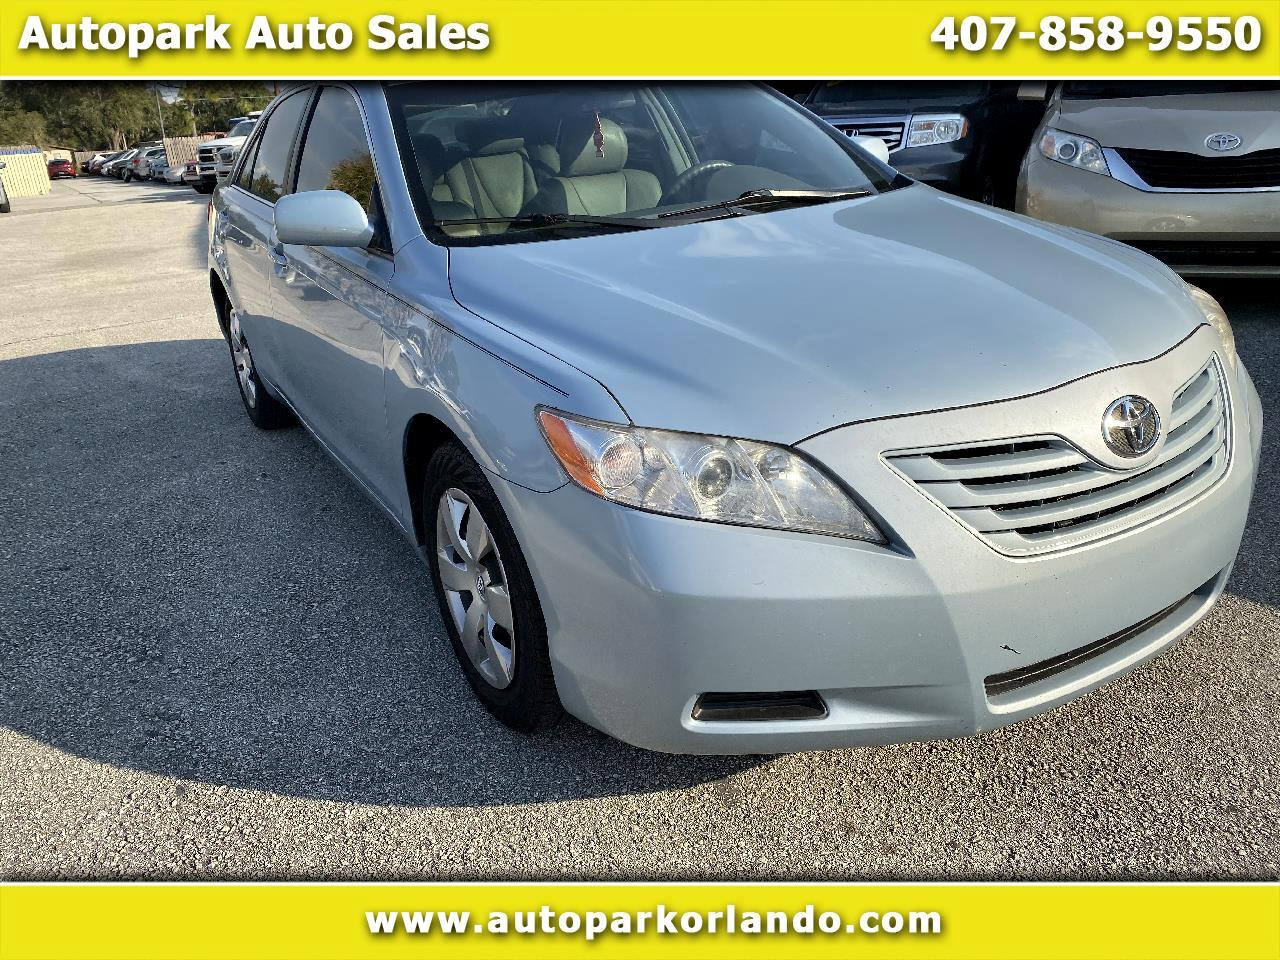 Toyota Camry 4dr Sdn I4 Auto LE (Natl) *Ltd Avail* 2009